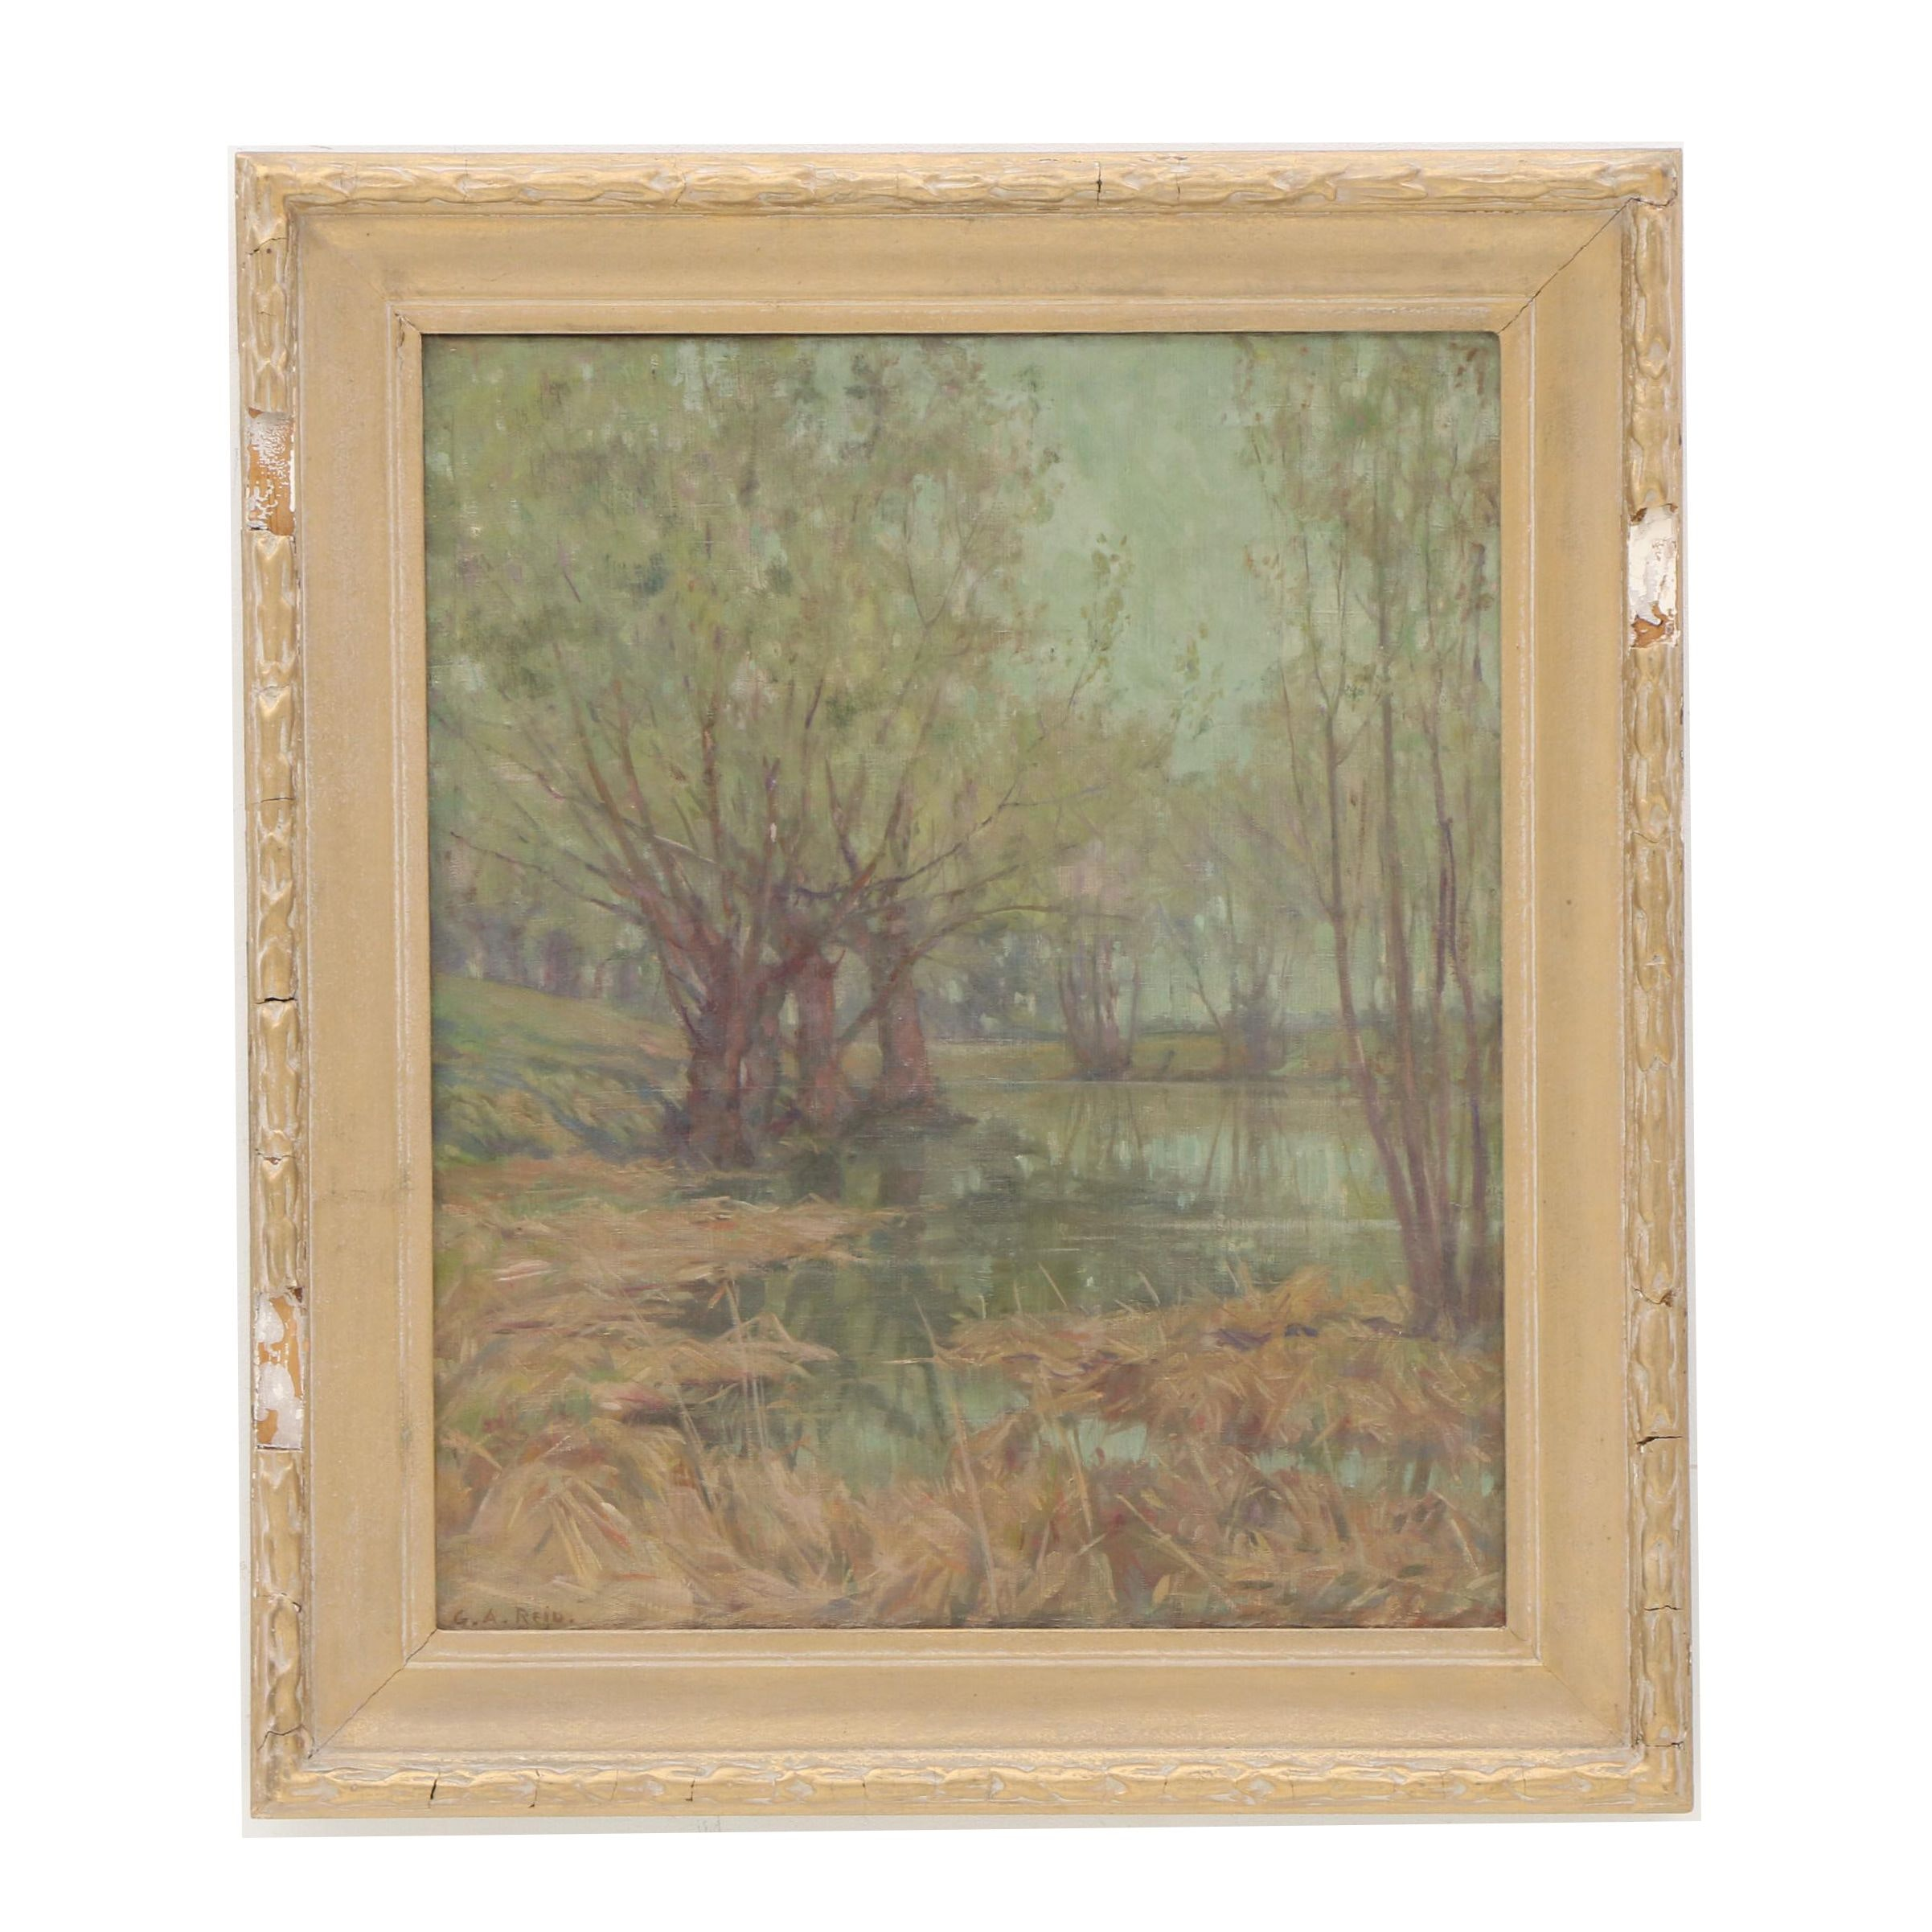 "George Agnew Reid 1922 Oil Painting ""The Pond"""